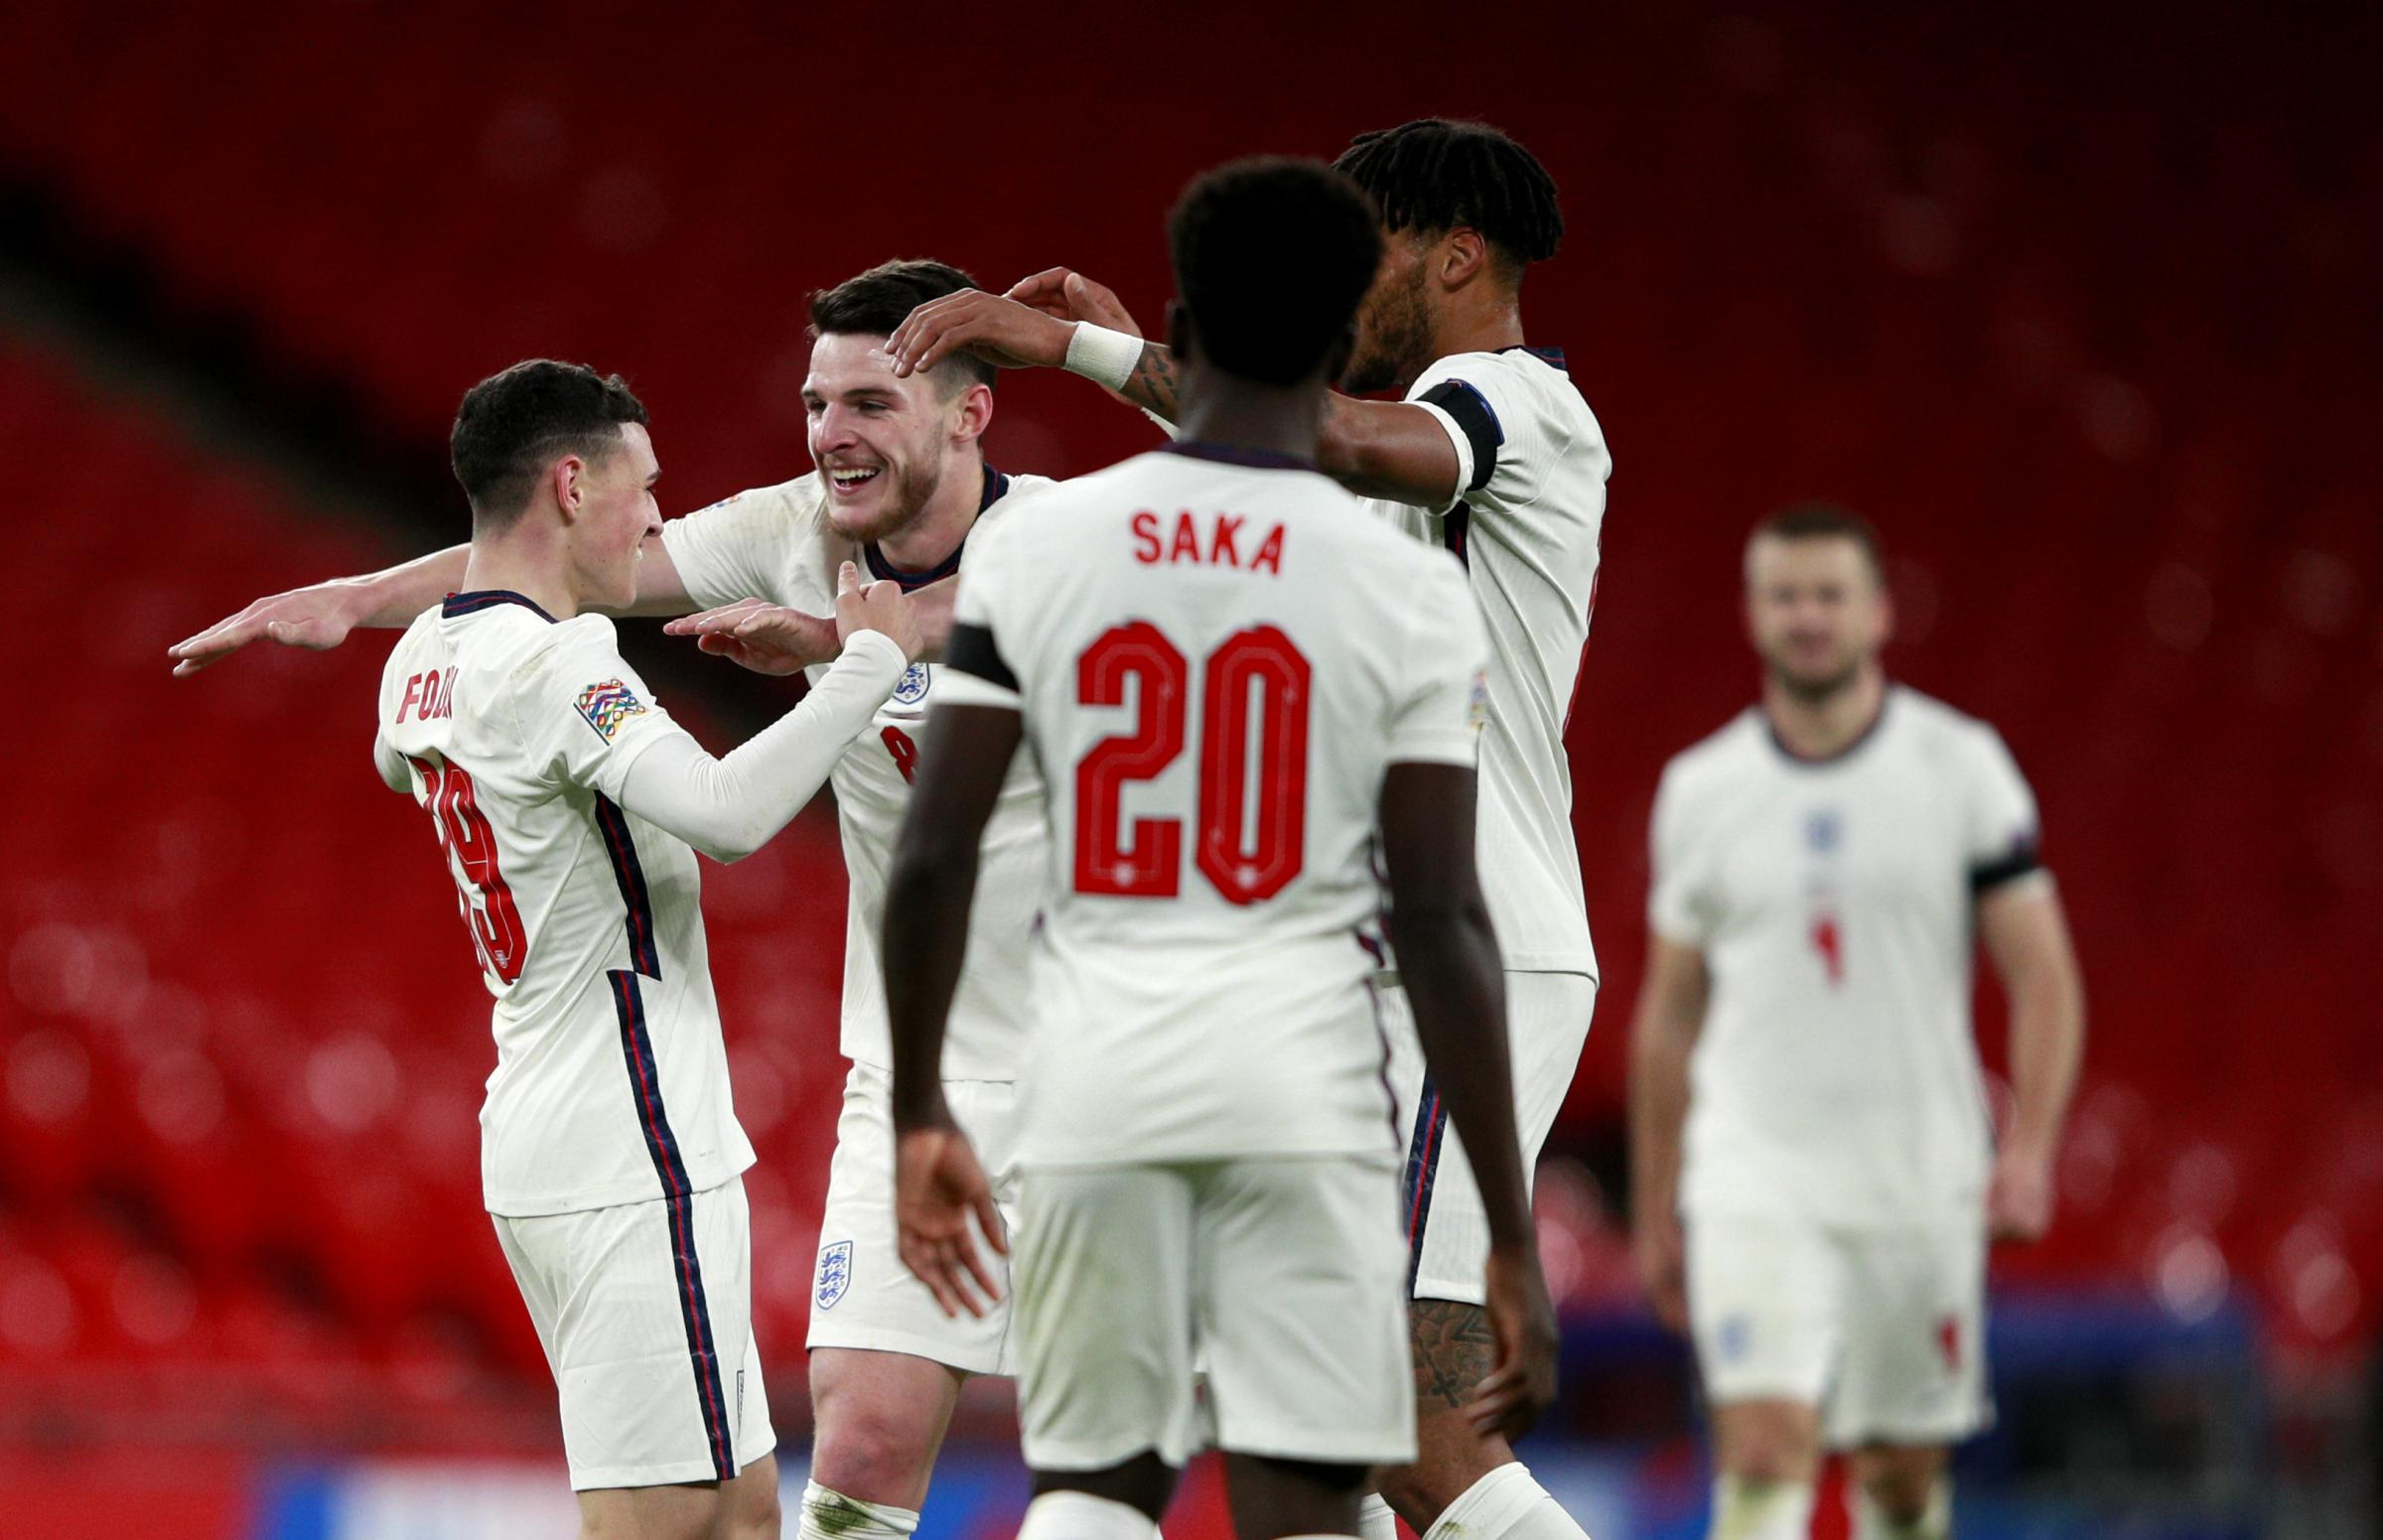 Englands Phil Foden (left) celebrates scoring his sides fourth goal of the game with team-mates during the UEFA Nations League Group A2 match at Wembley Stadium, London. PA Photo. Picture date: Wednesday November 18, 2020. See PA story SOCCER England.